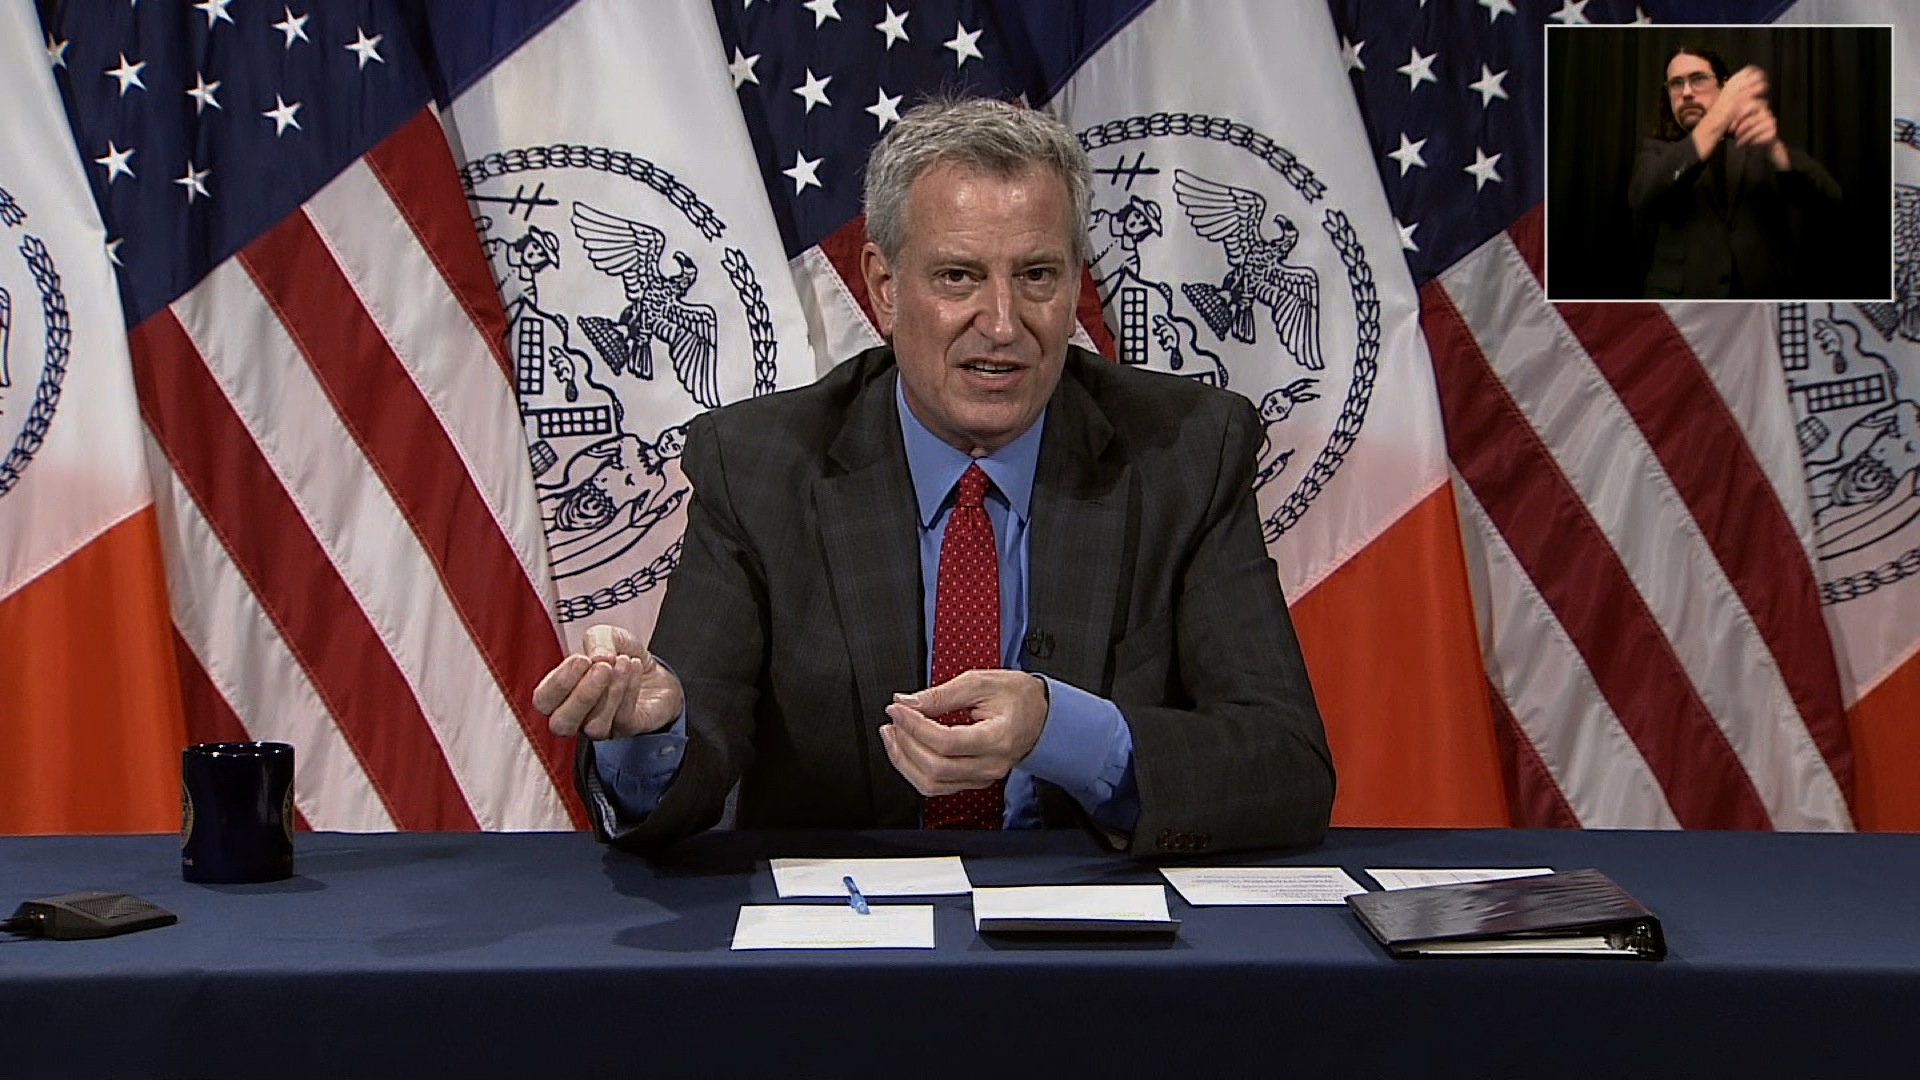 New York City Mayor Bill de Blasio speaks during a press conference in New York on July 2.